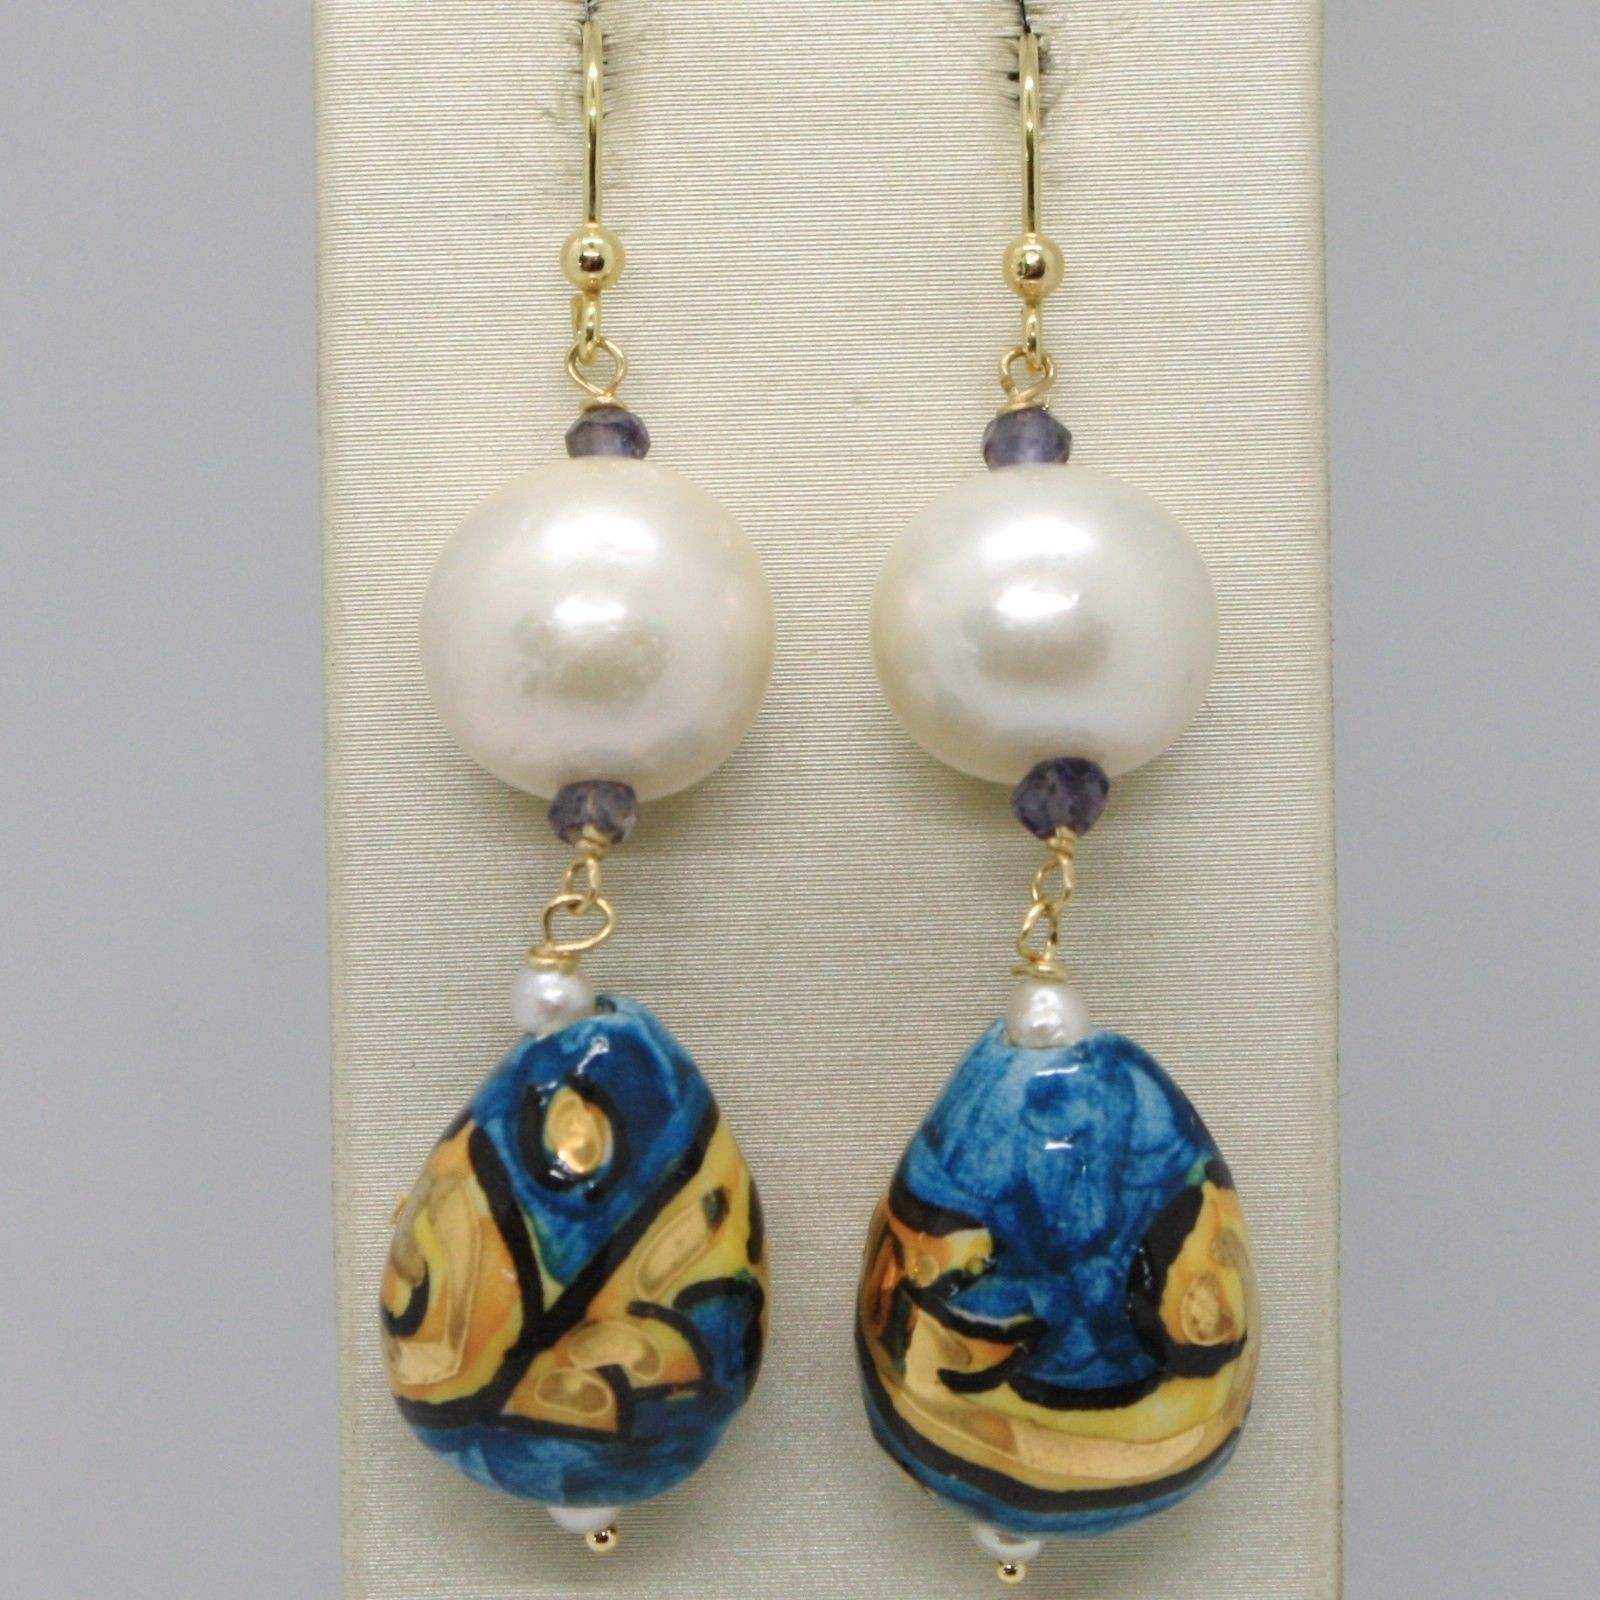 YELLOW GOLD EARRINGS 750 18K PEARLS AND A DROP HAND-PAINTED MADE IN ITALY